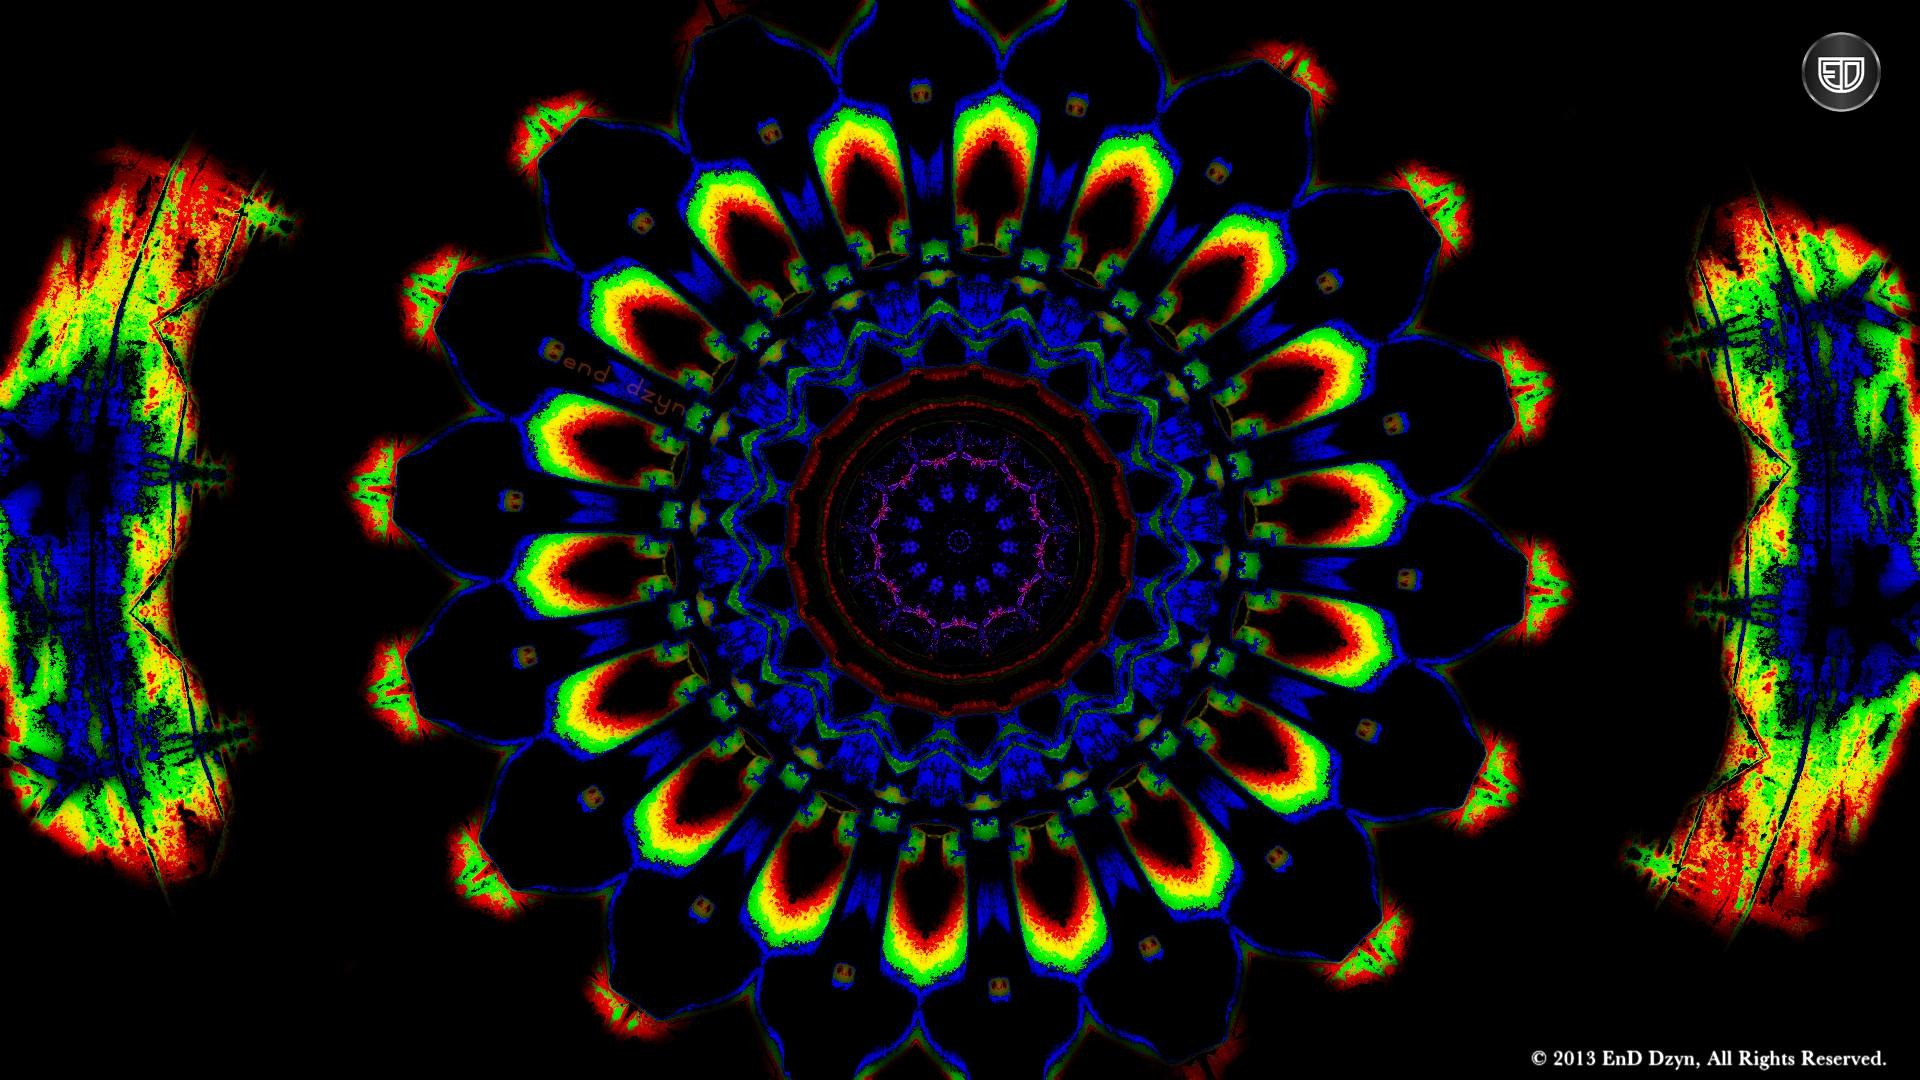 Download Wallpaper High Quality Trippy - 81696  Perfect Image Reference_468074.jpg